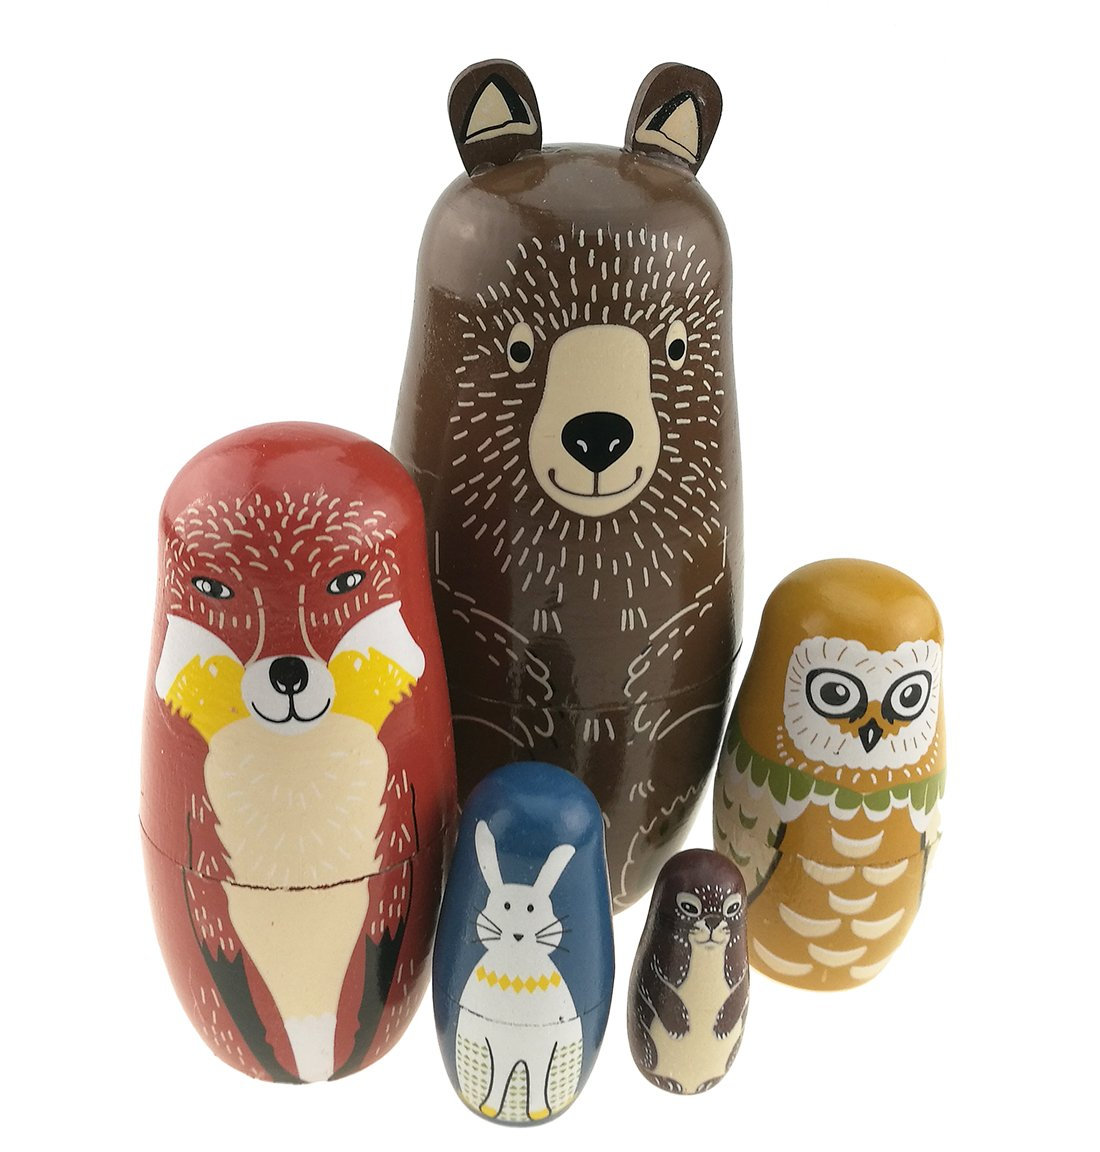 Set Of 5 Cartoon Bear Fox Owl Rabbit Raccoon Handmade Wooden Russian Nesting Dolls Matryoshka Dolls For Birthday Christmas New Year Gift Home Decoration Kids Toy